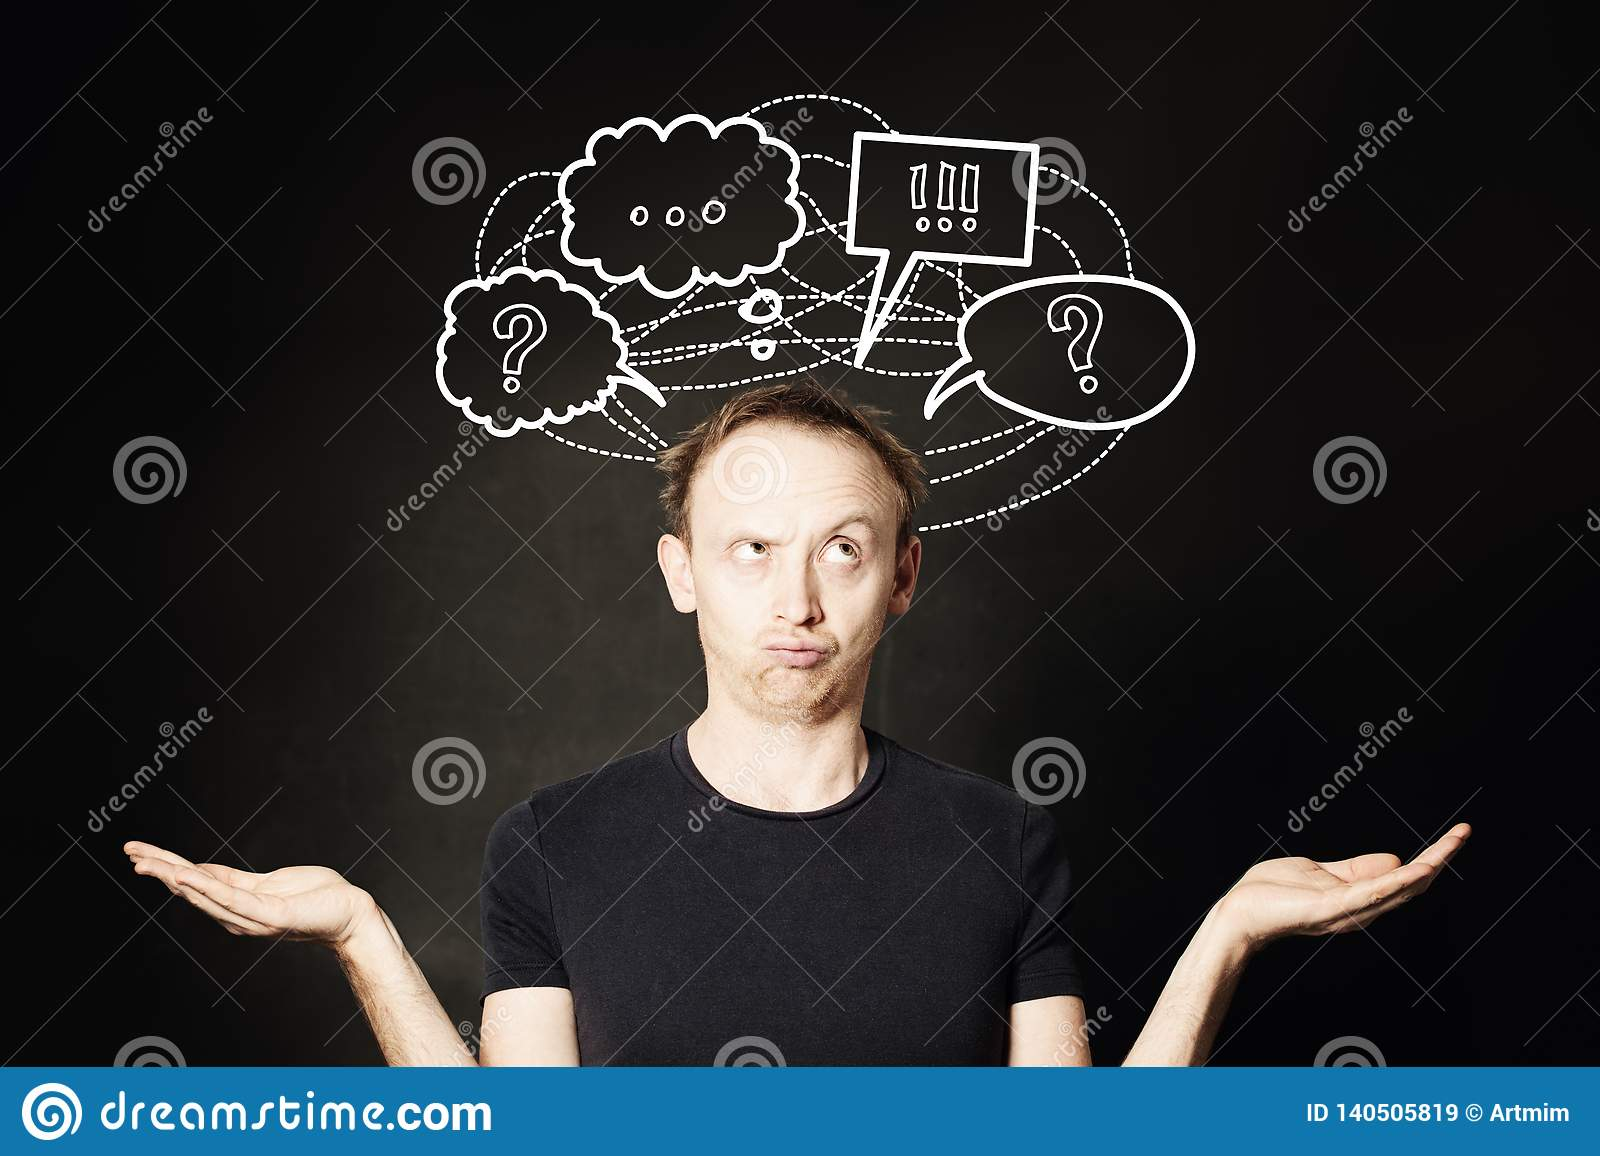 Man thinking with question mark and hand drawing sketch bubble on blackboard background. Choice, problem and solution concept